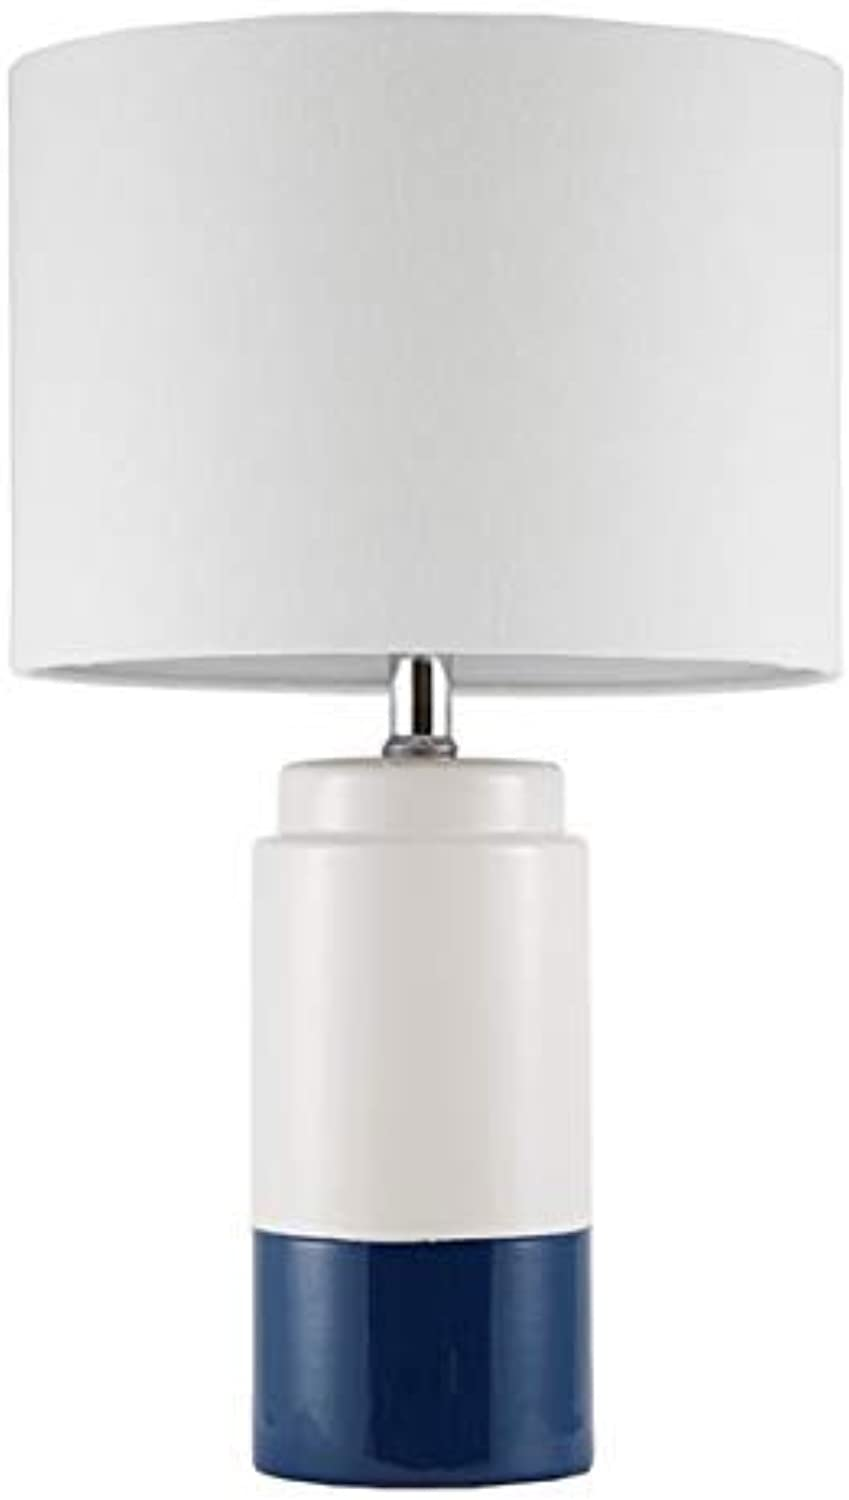 Bailey Navy White Table Lamp , Transitional Metal Ceramic Table Lamps for Bedrooms , 11 L X 11 W X 18.75 H , Navy